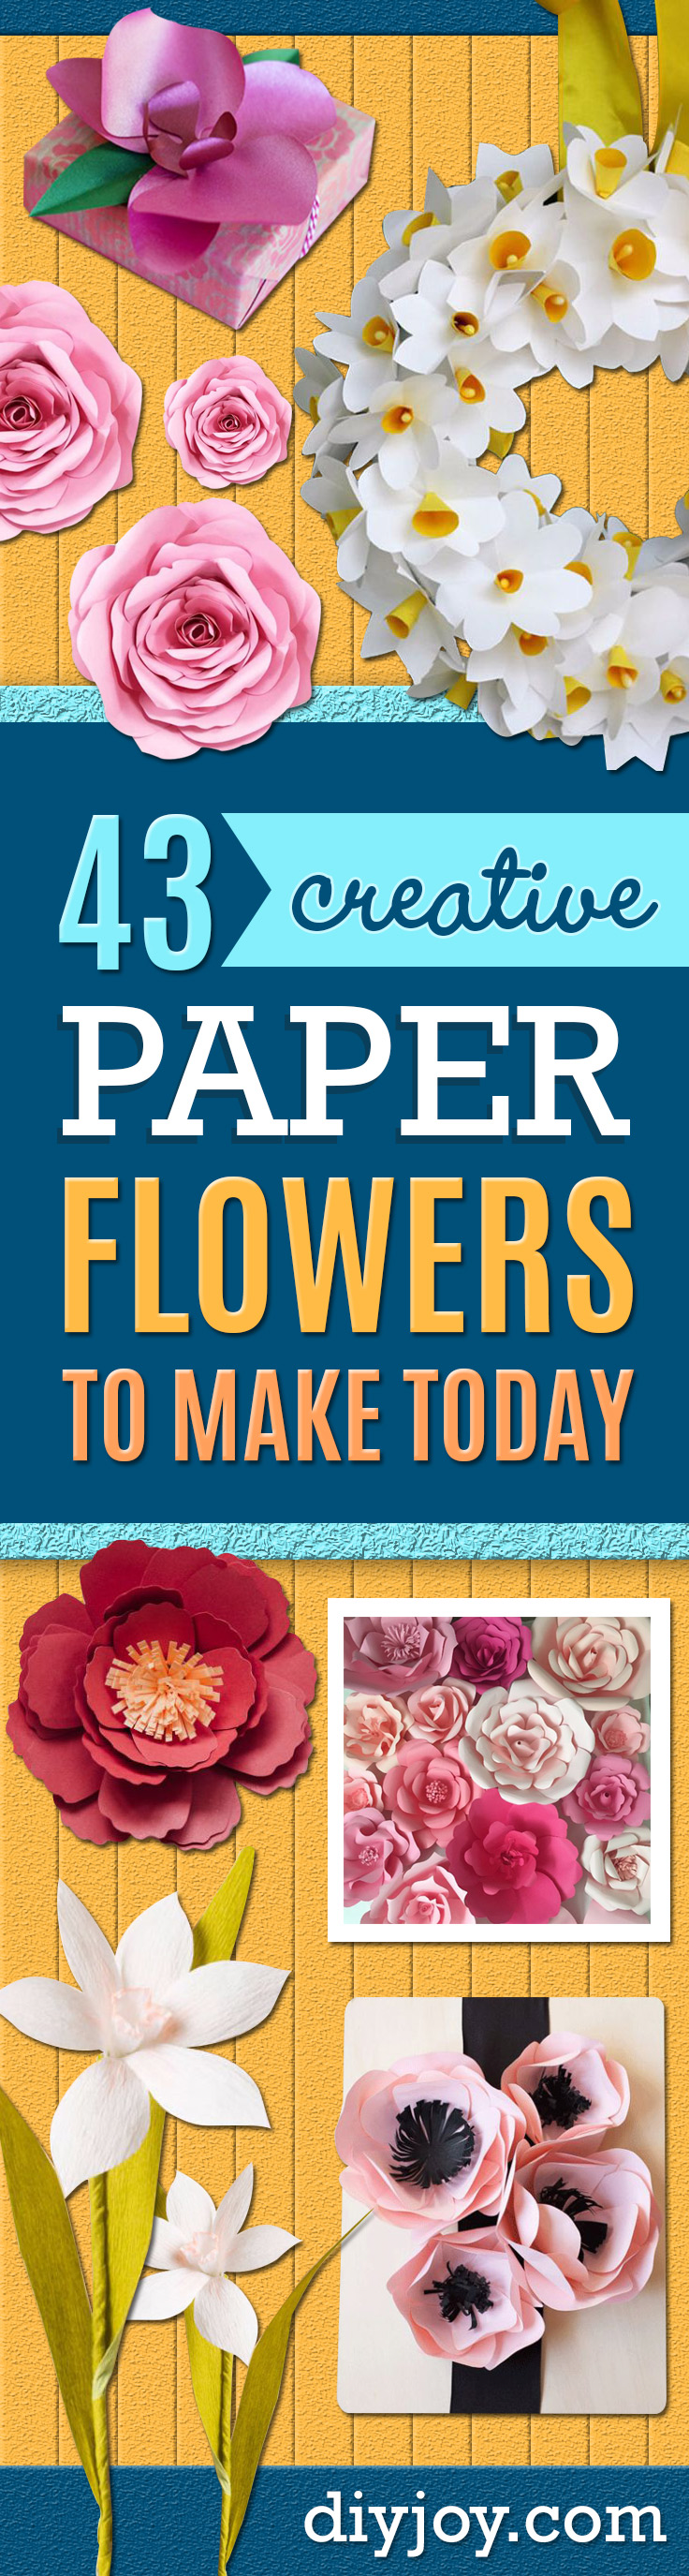 DIY Paper Flowers - How To Make A Paper Flower - Large Wedding Backdrop for Wall Decor - Easy Tissue Paper Flower Tutorial for Kids - Giant Projects for Photo Backdrops - Daisy, Roses, Bouquets, Centerpieces - Cricut Template and Step by Step Tutorial - How to Make Paper Flower